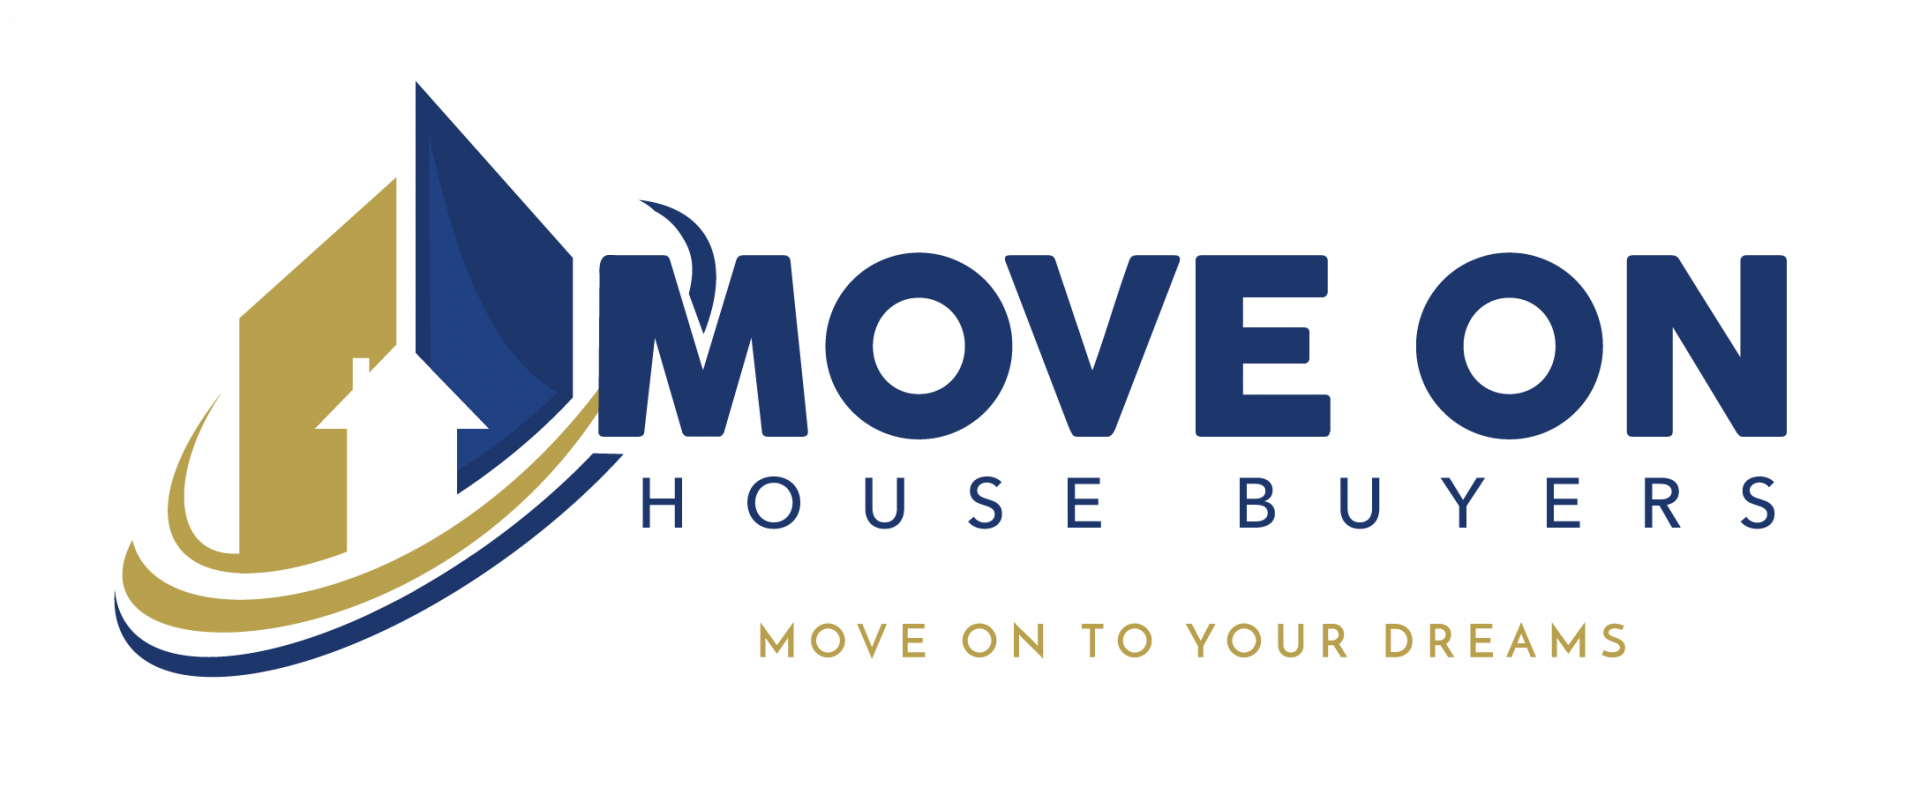 Move On House Buyers – We Buy Houses logo